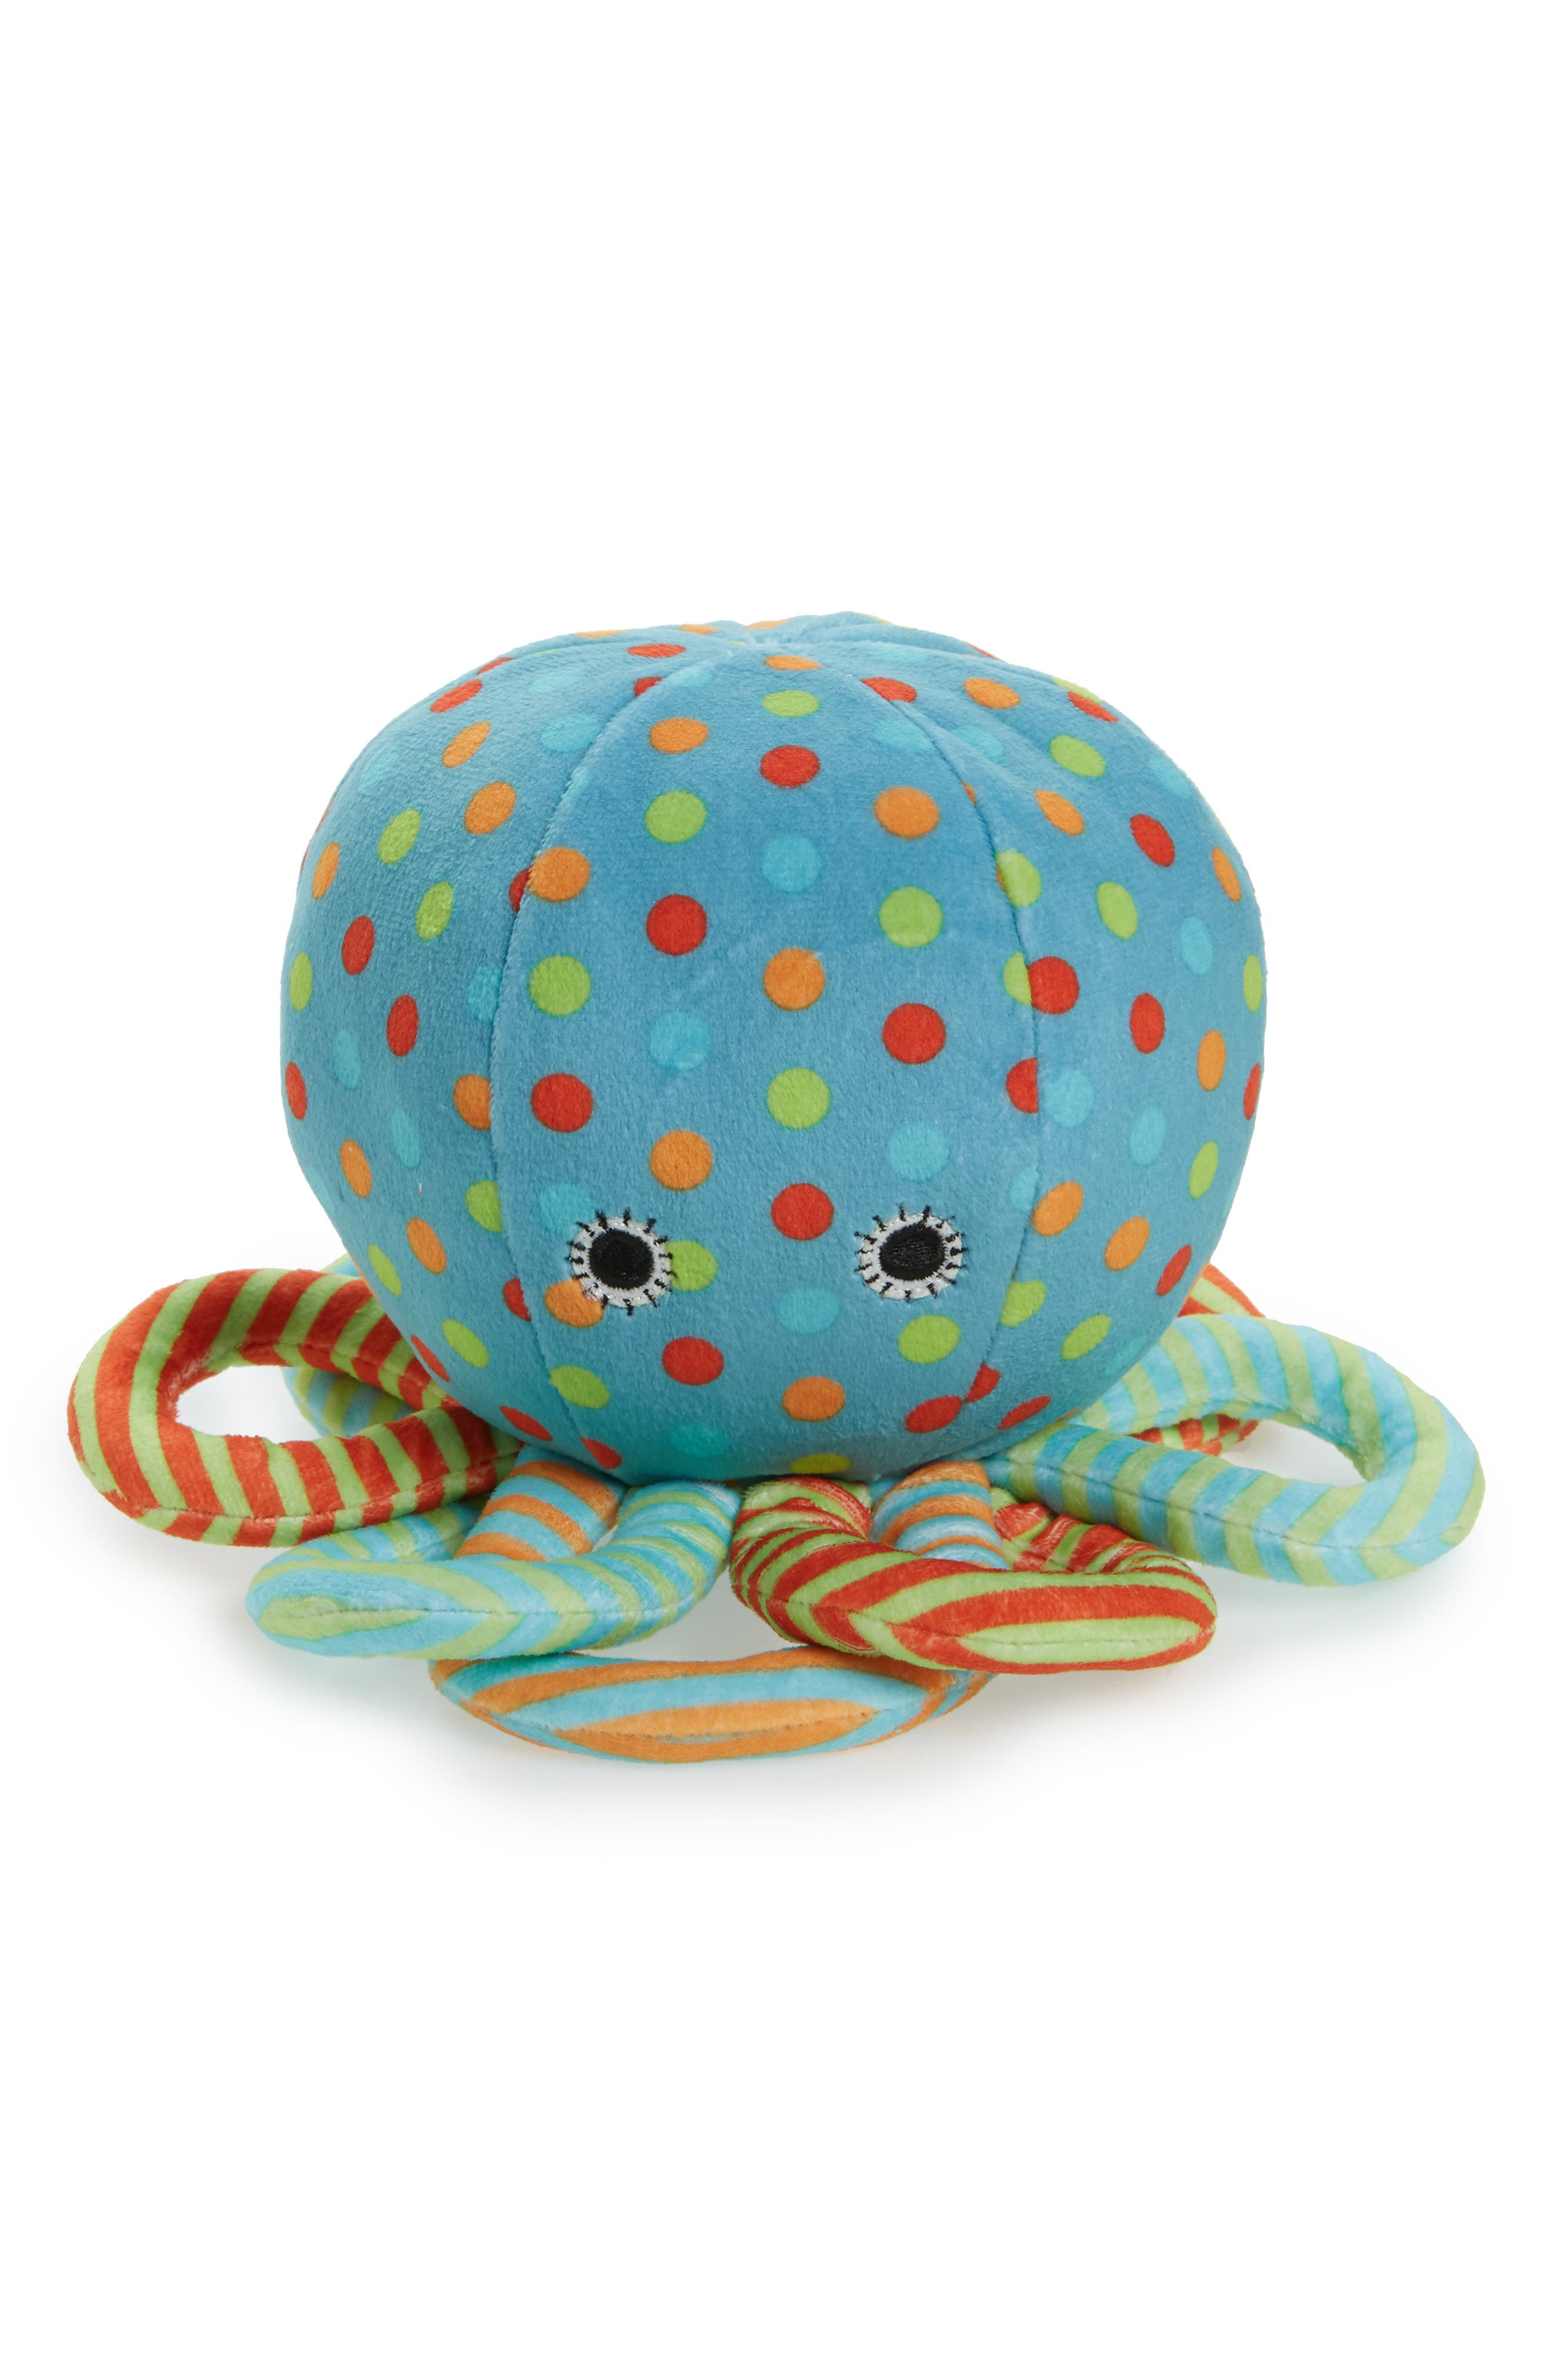 Alternate Image 1 Selected - Jellycat Octopus Chime